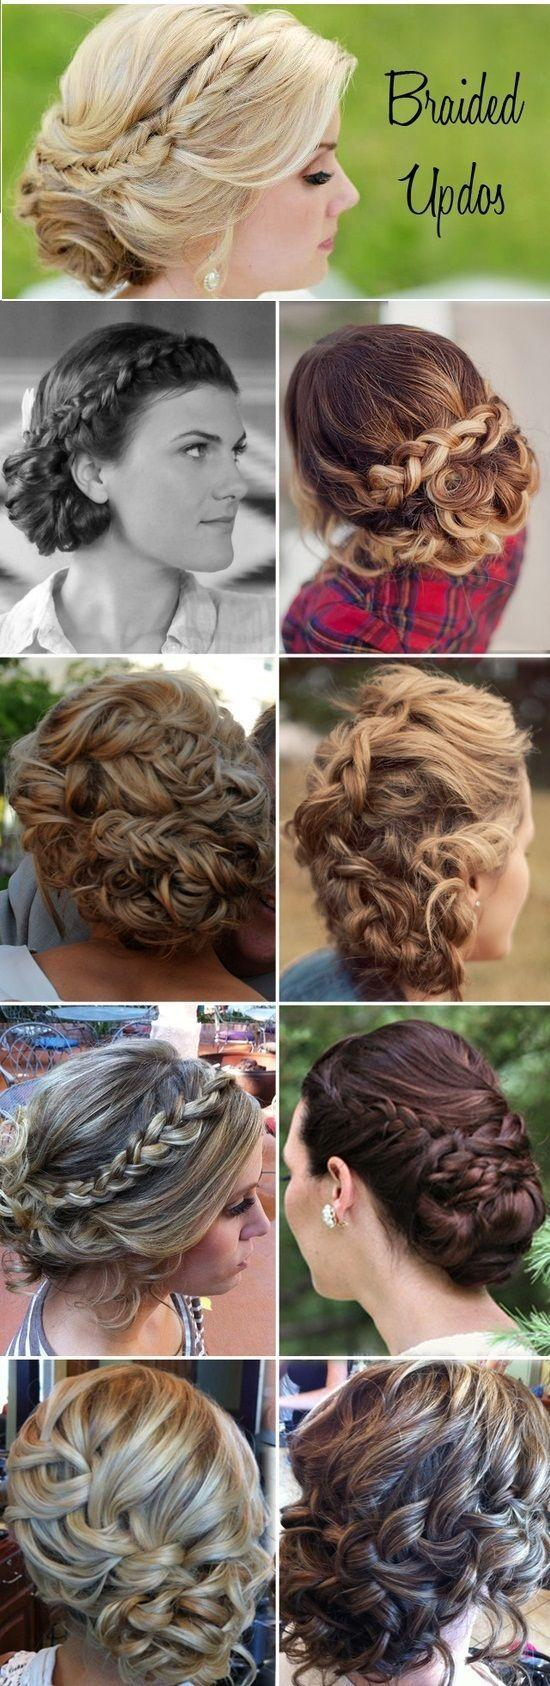 Wedding - 5 Latest Updo Hairstyles